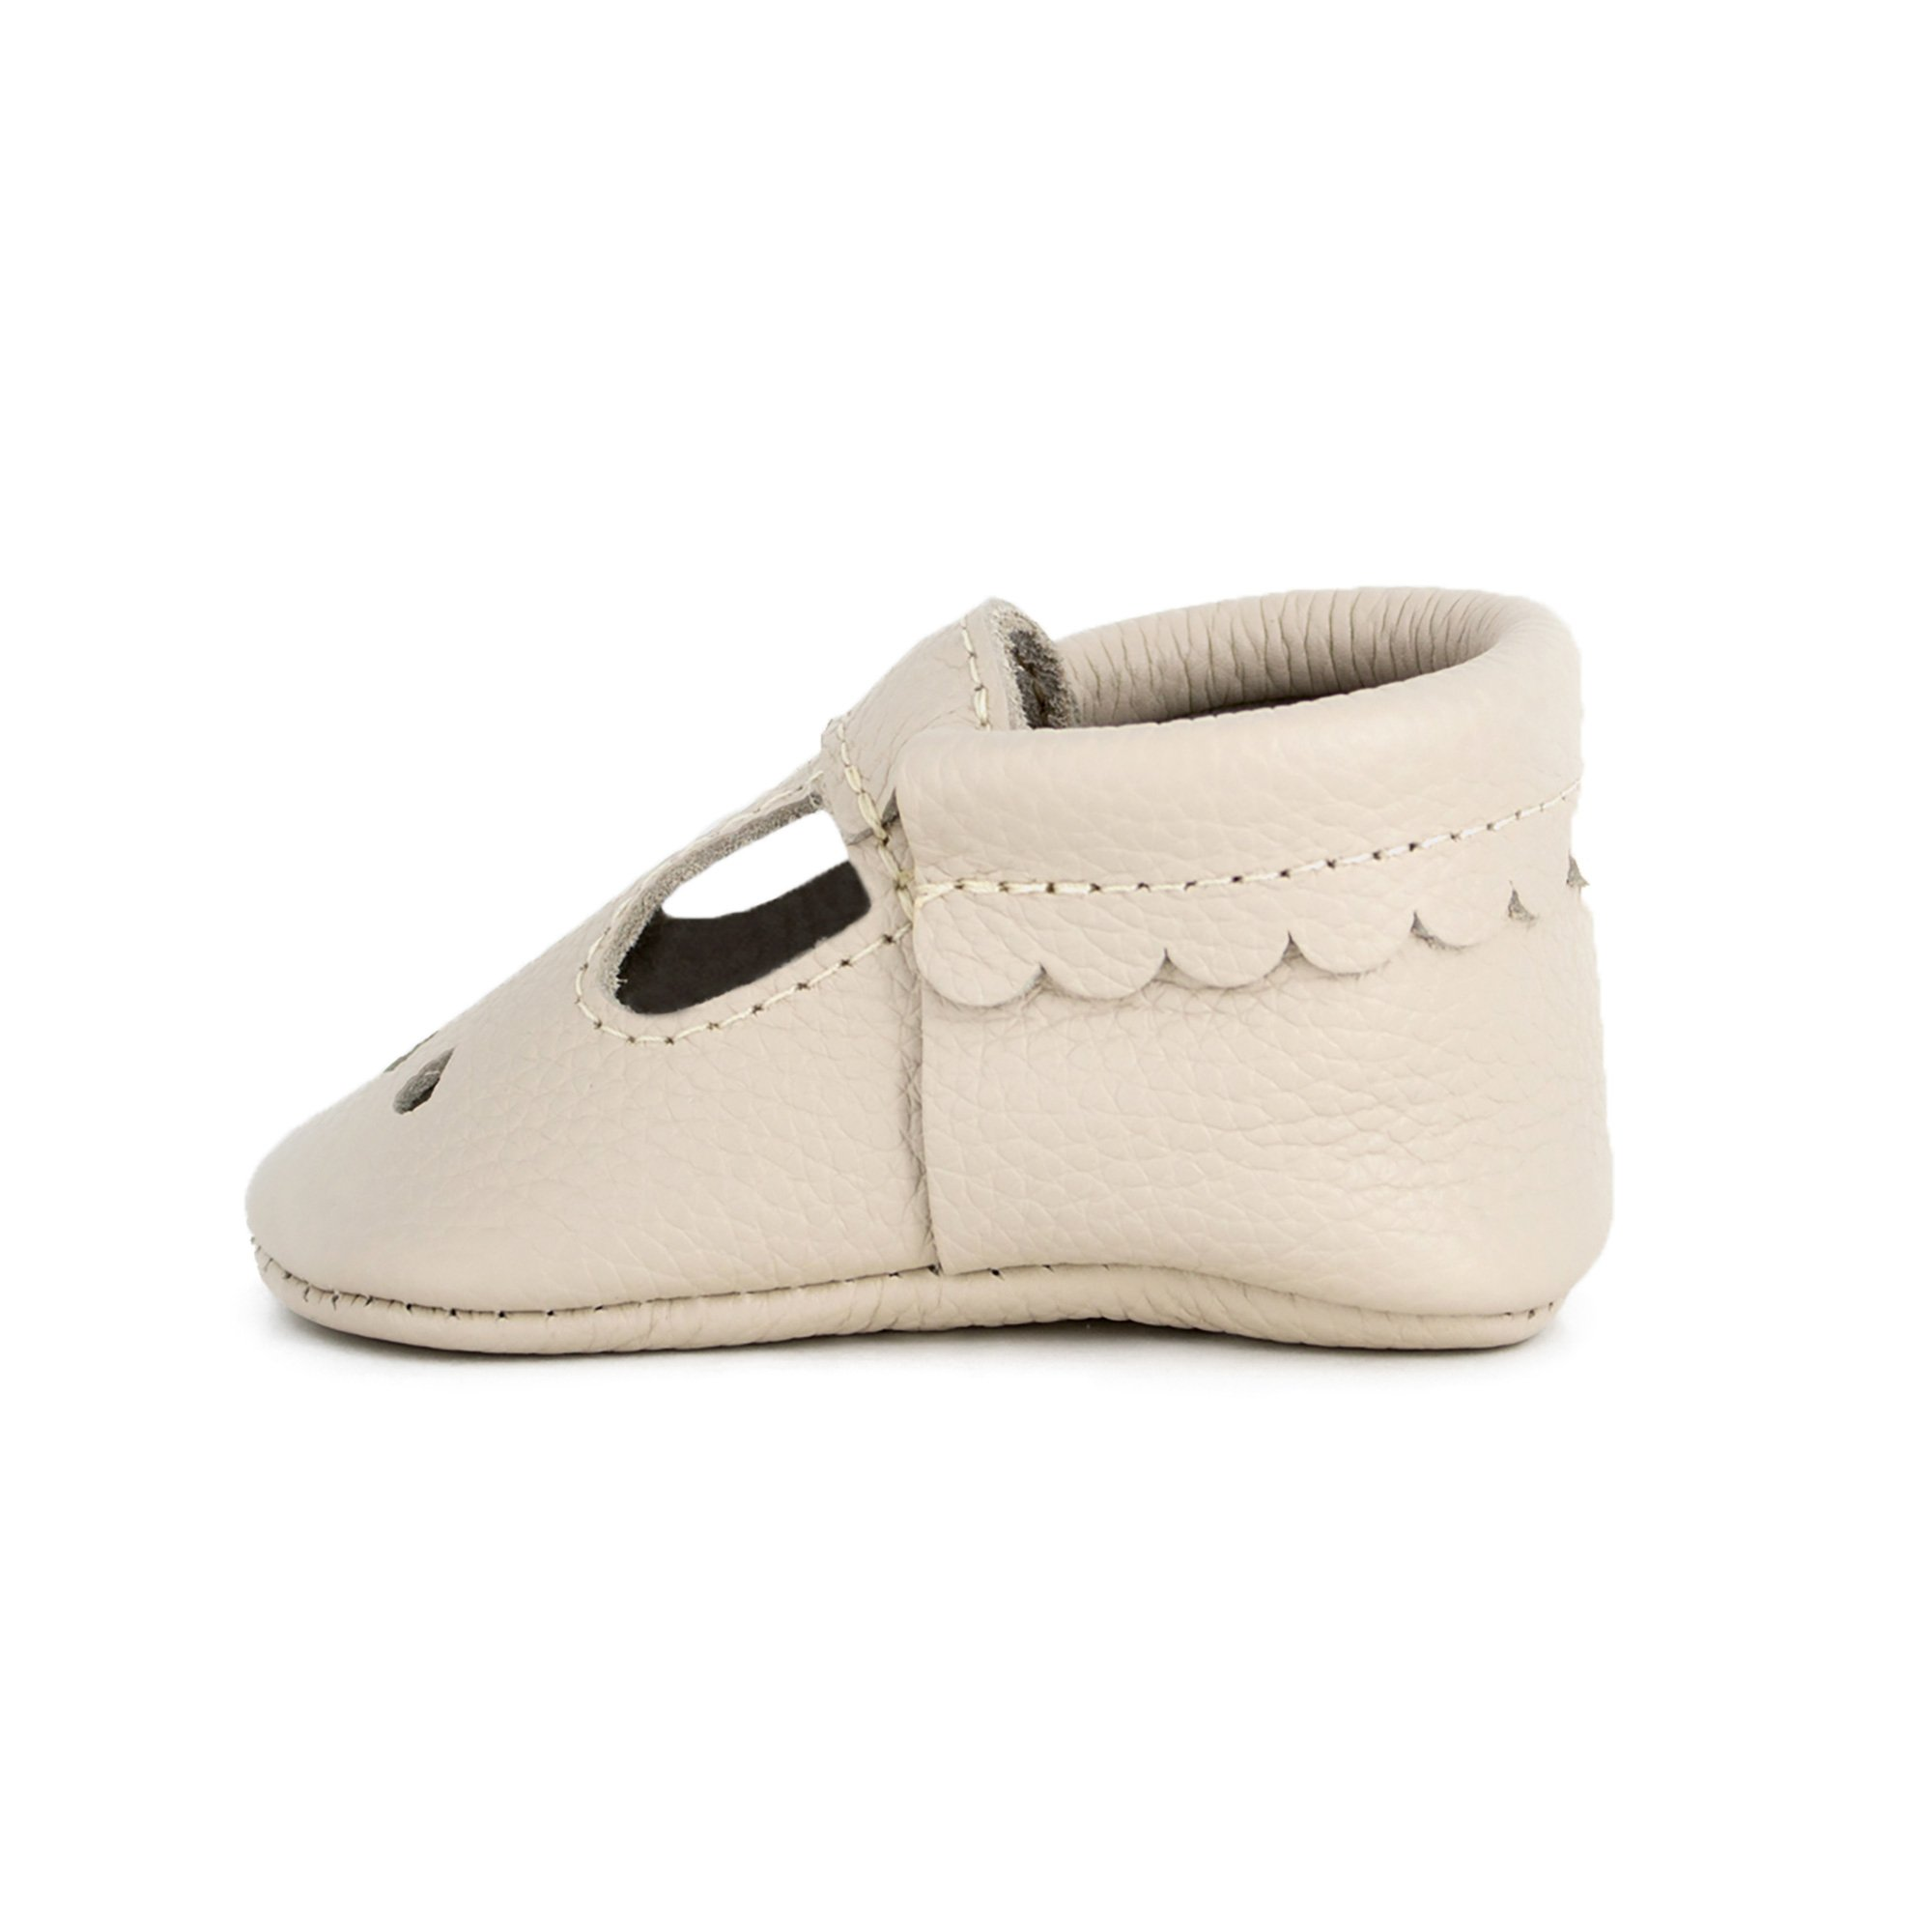 Freshly Picked Birch Mary Jane Soft Sole Leather Baby Moccasins - Size 3